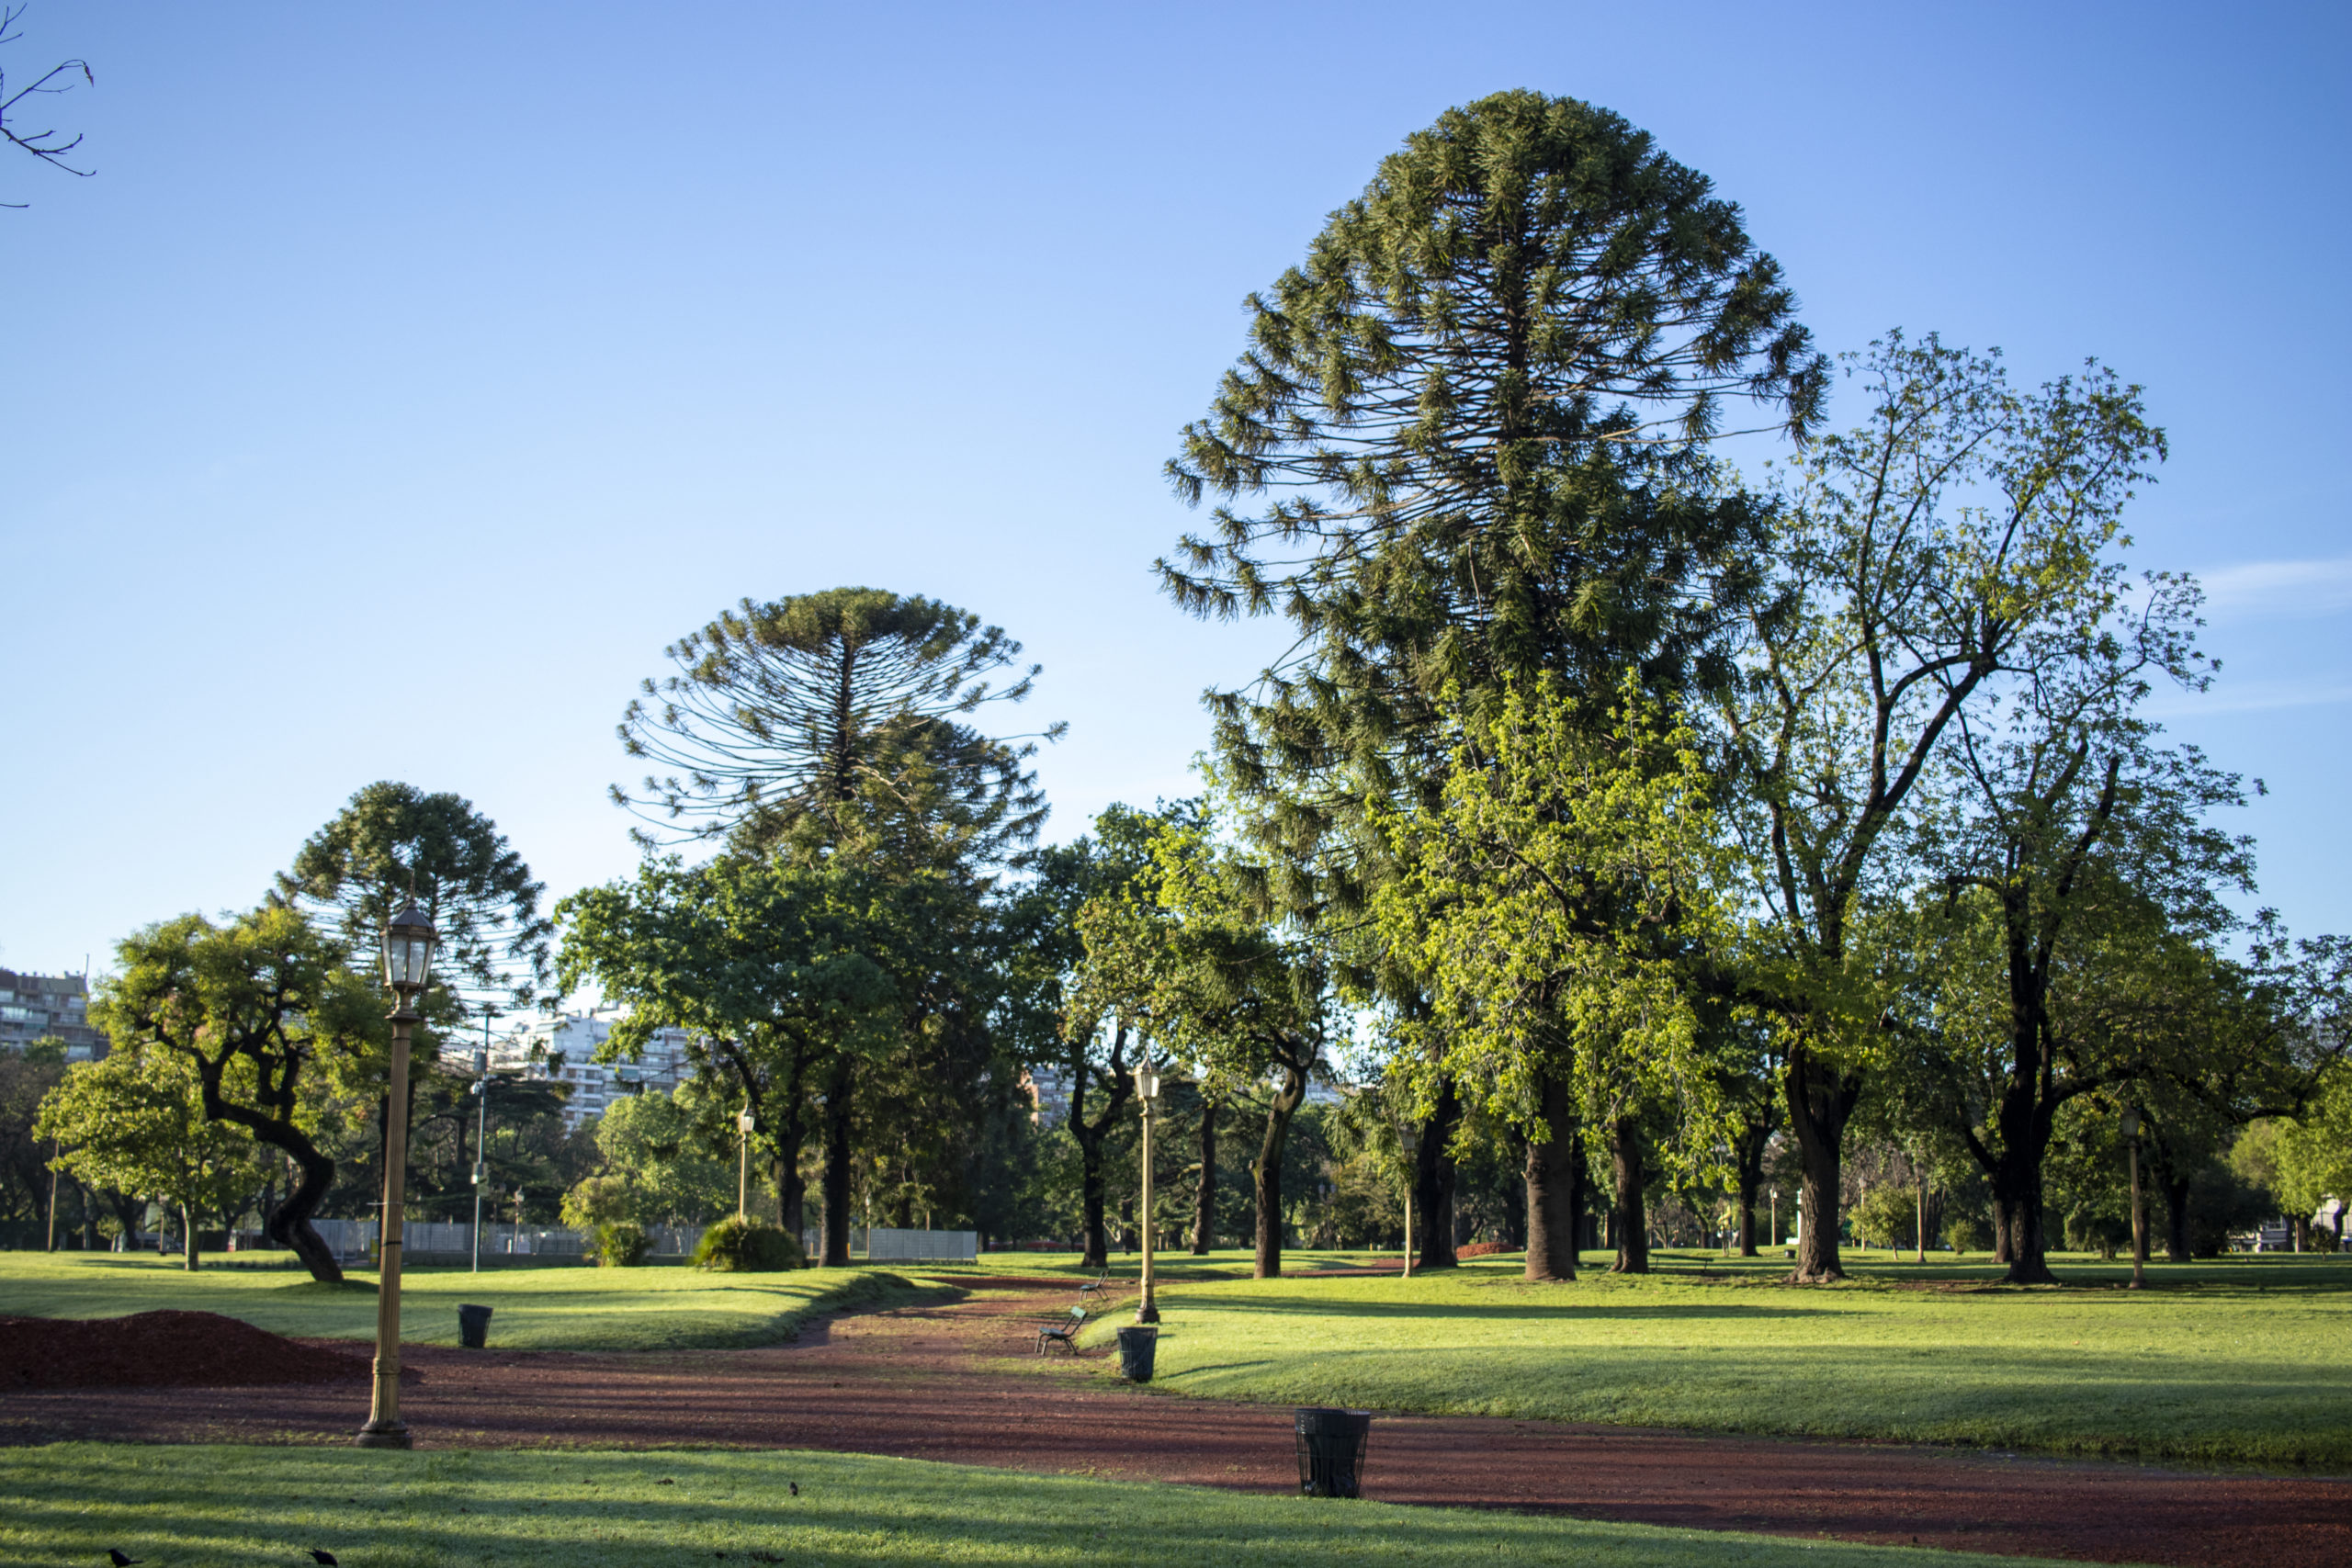 View of a beautiful park with green areas and reddish soil, located within the city